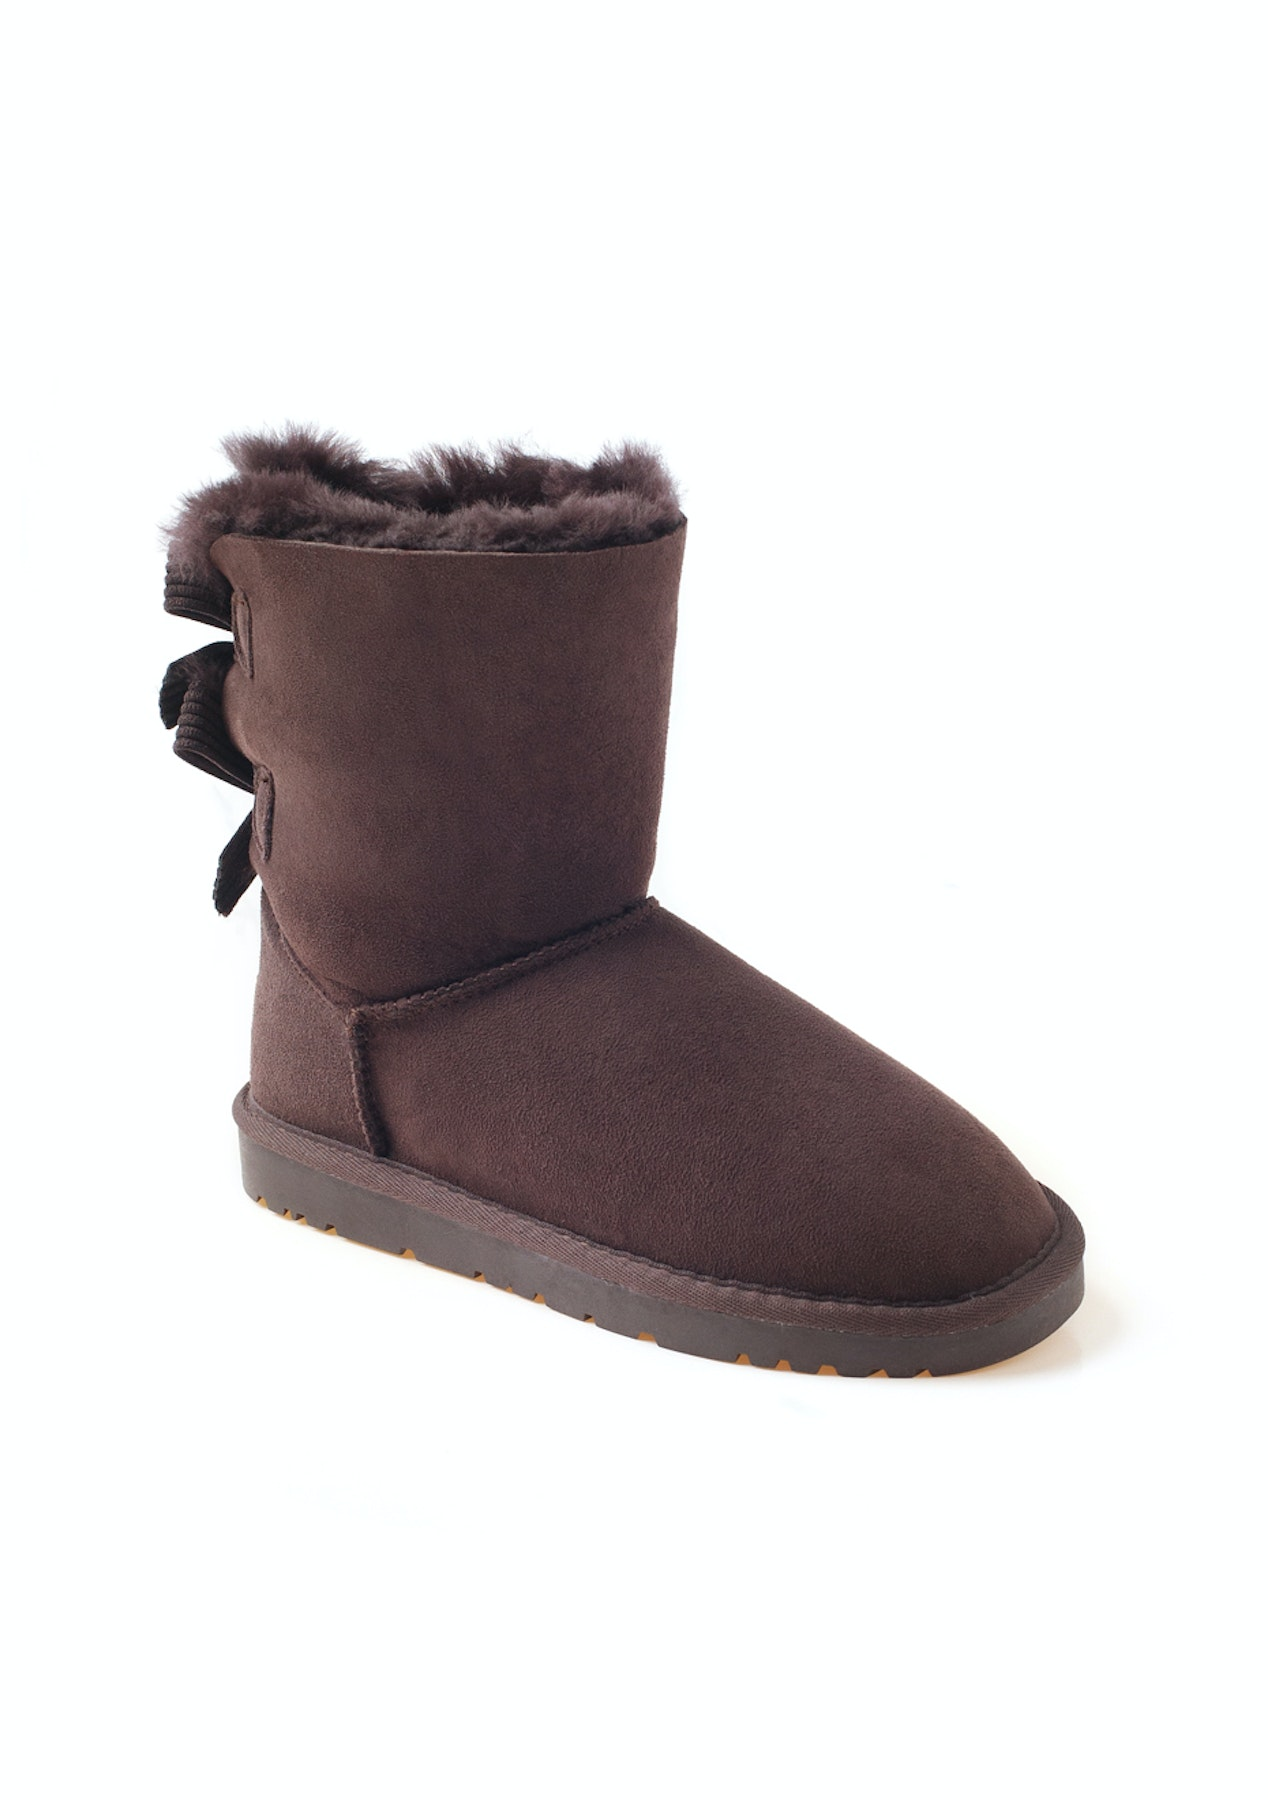 c3195fc945cdd Ozwear - Ugg Bailey Bow Corduroy Boots (Water Resistant) - Chocolate - Half  Price Ozwear Uggs - Onceit